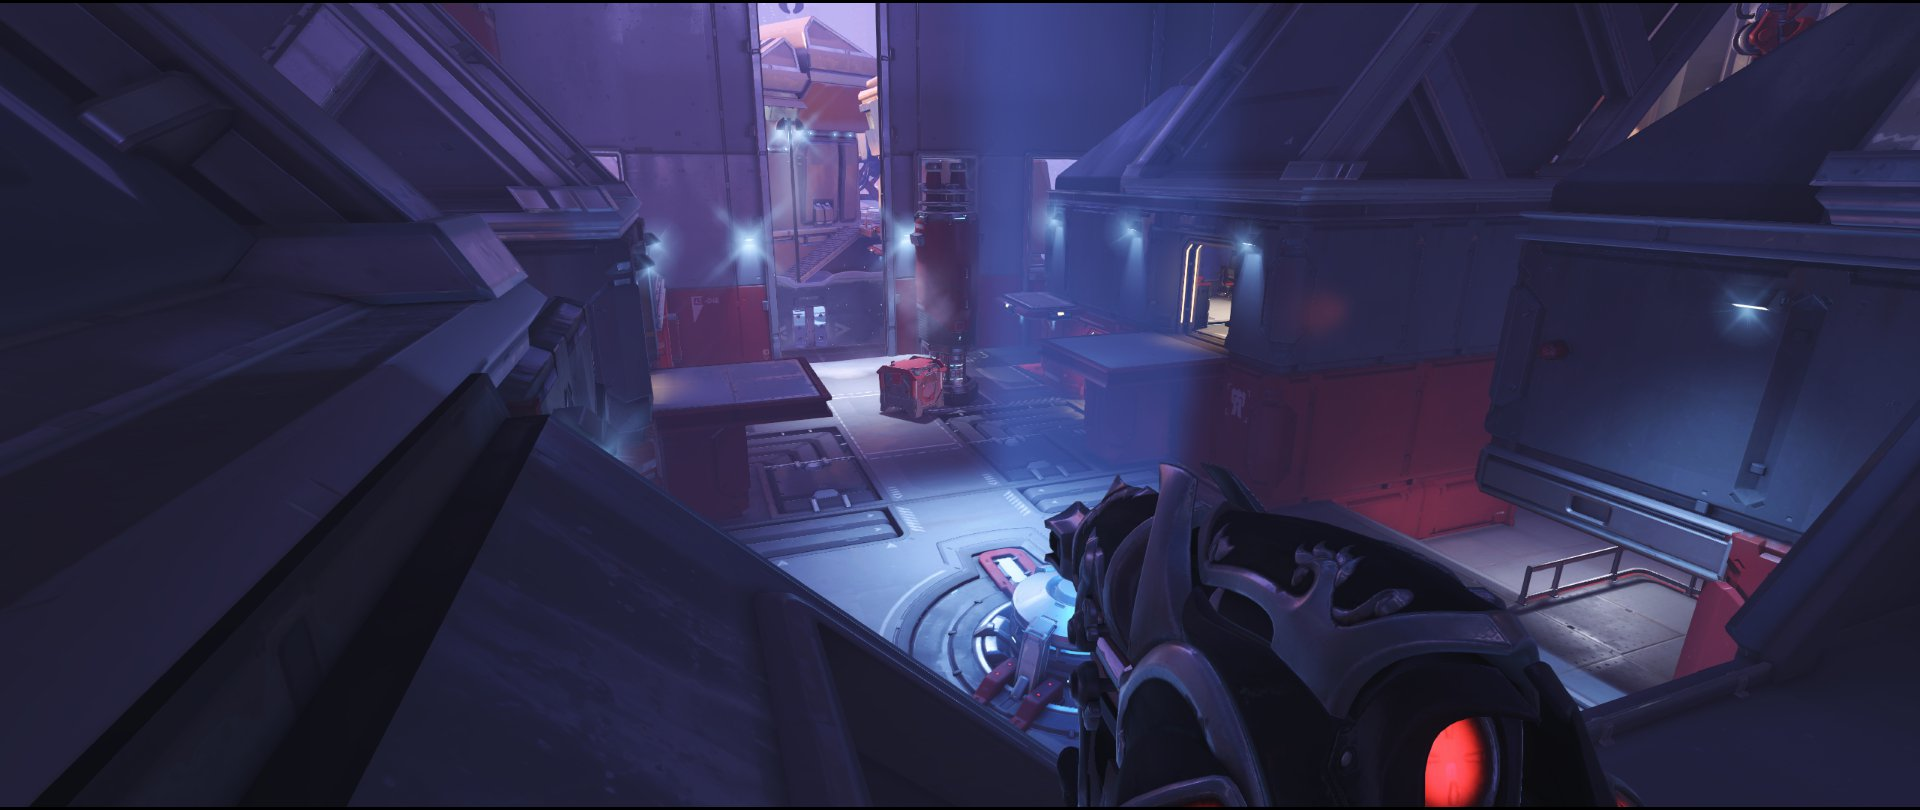 Left high ground bridge defense sniping spot Widowmaker Volskaya Industries Overwatch.jpg